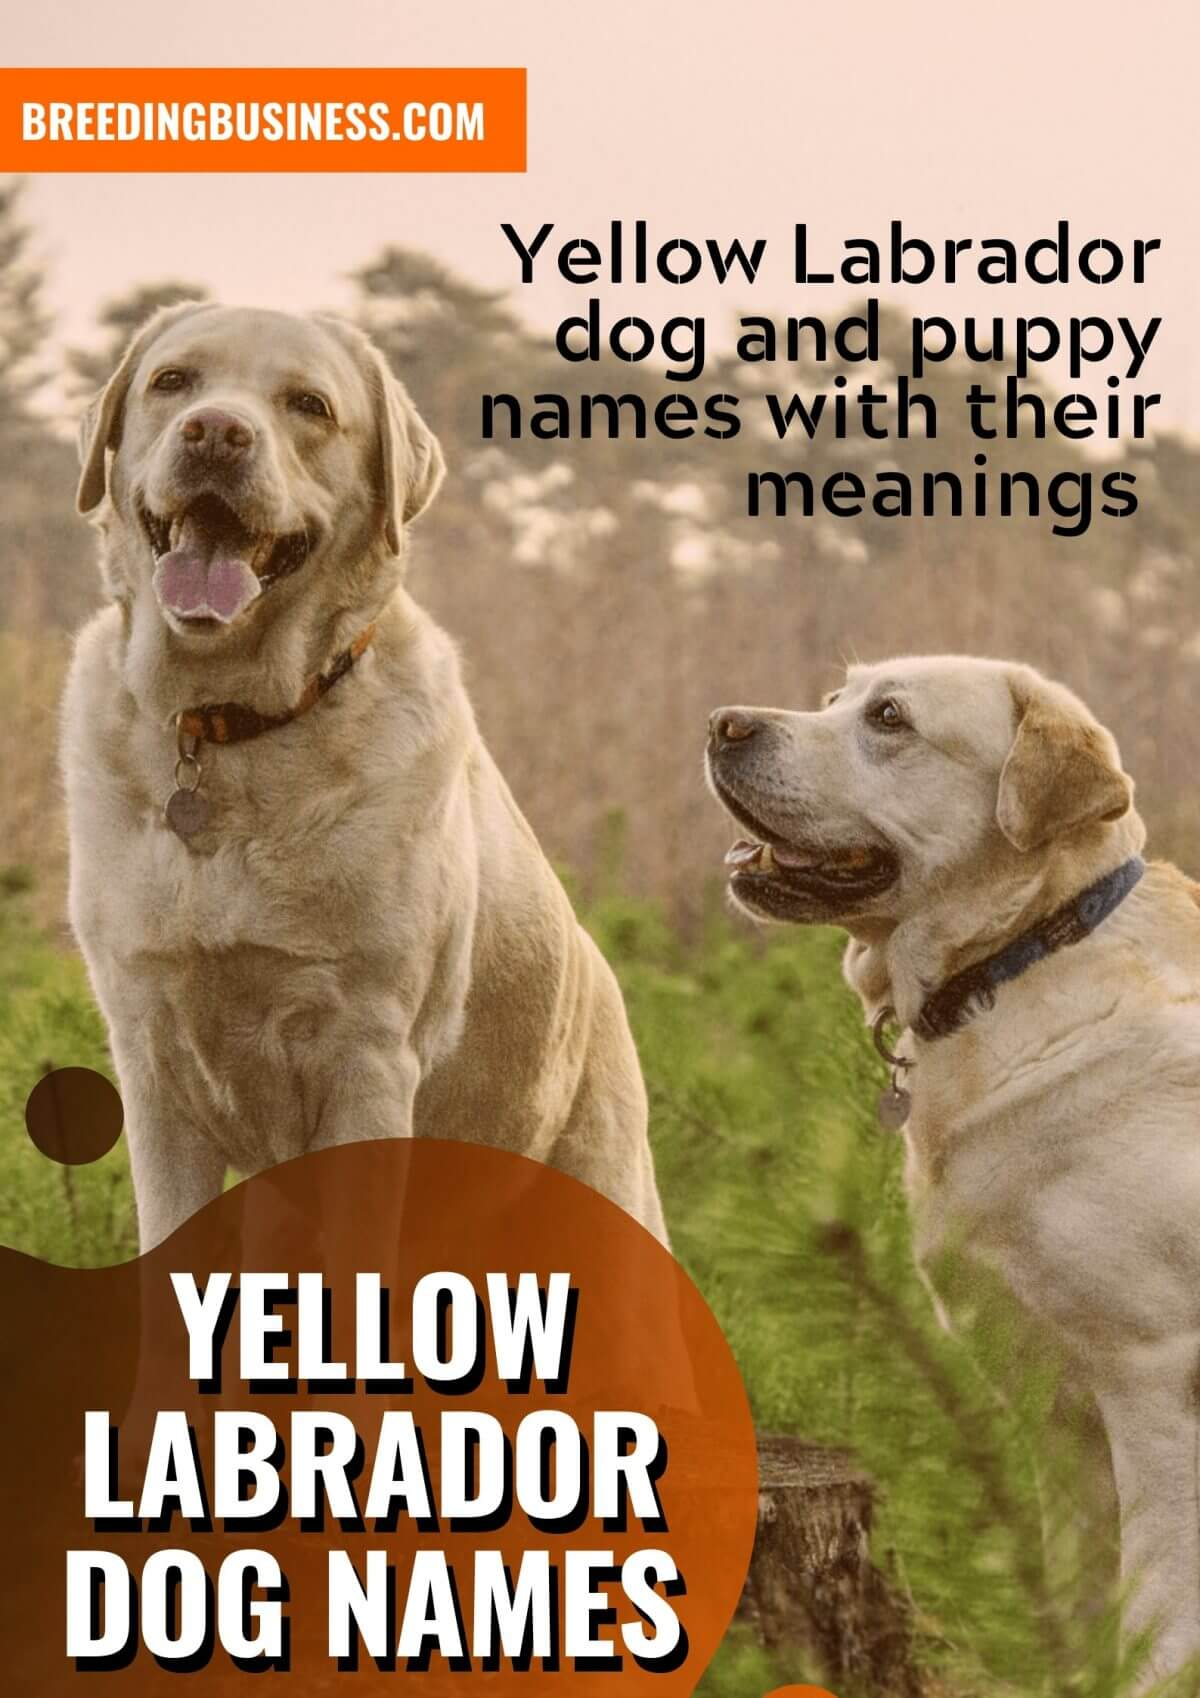 The best Labrador dog names!